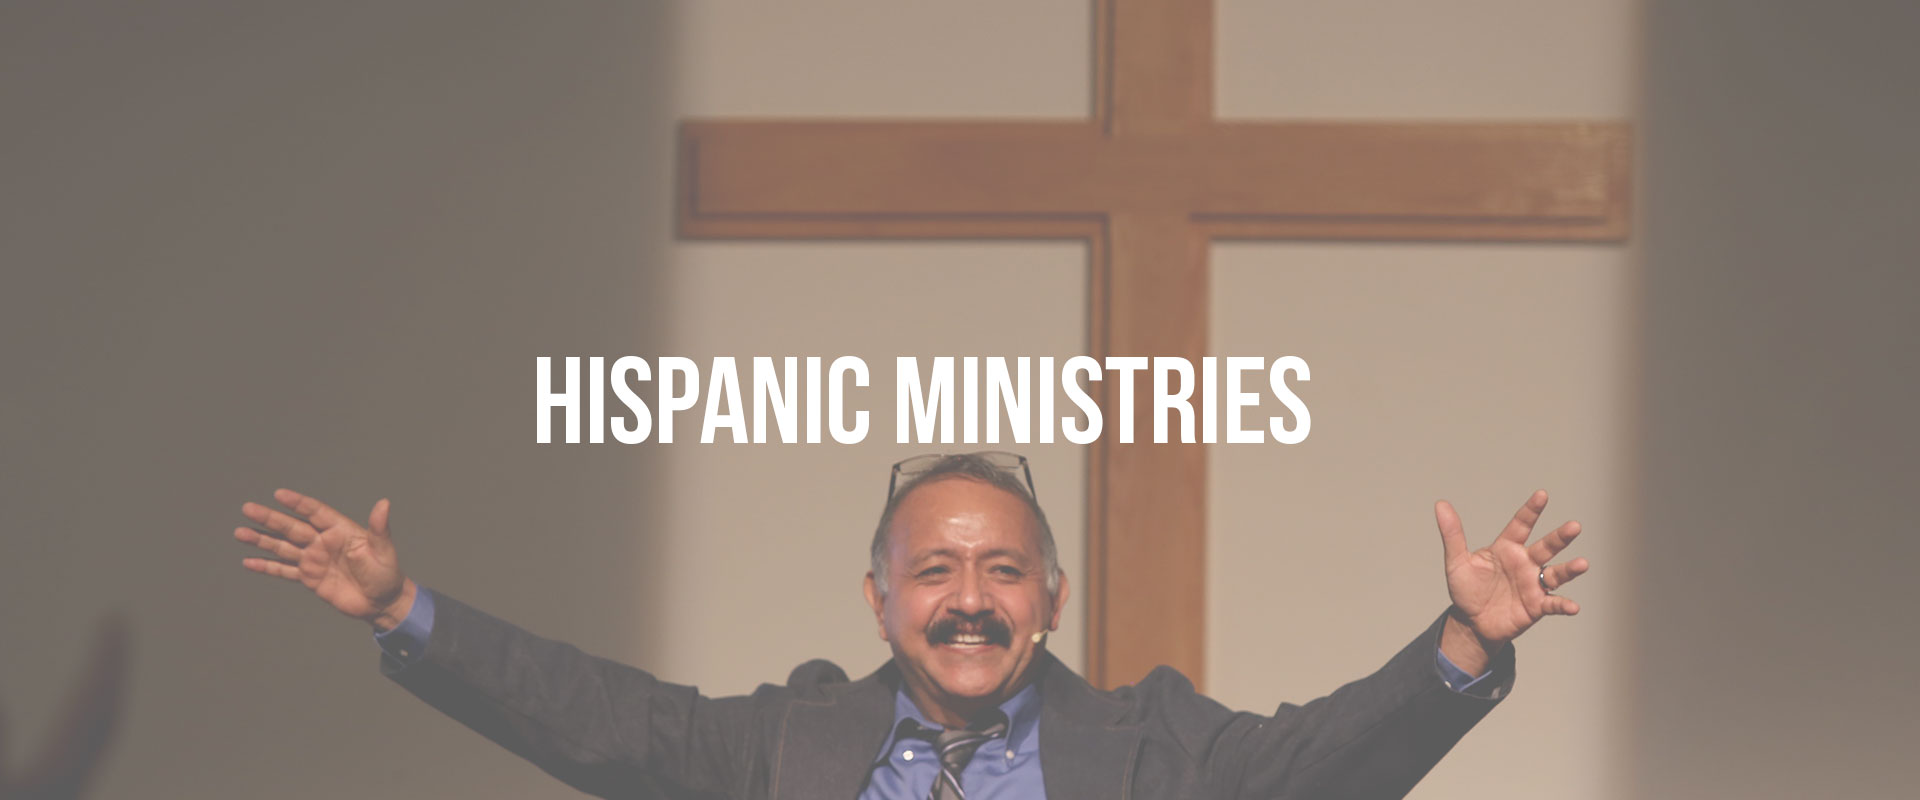 hispanic-ministries-header